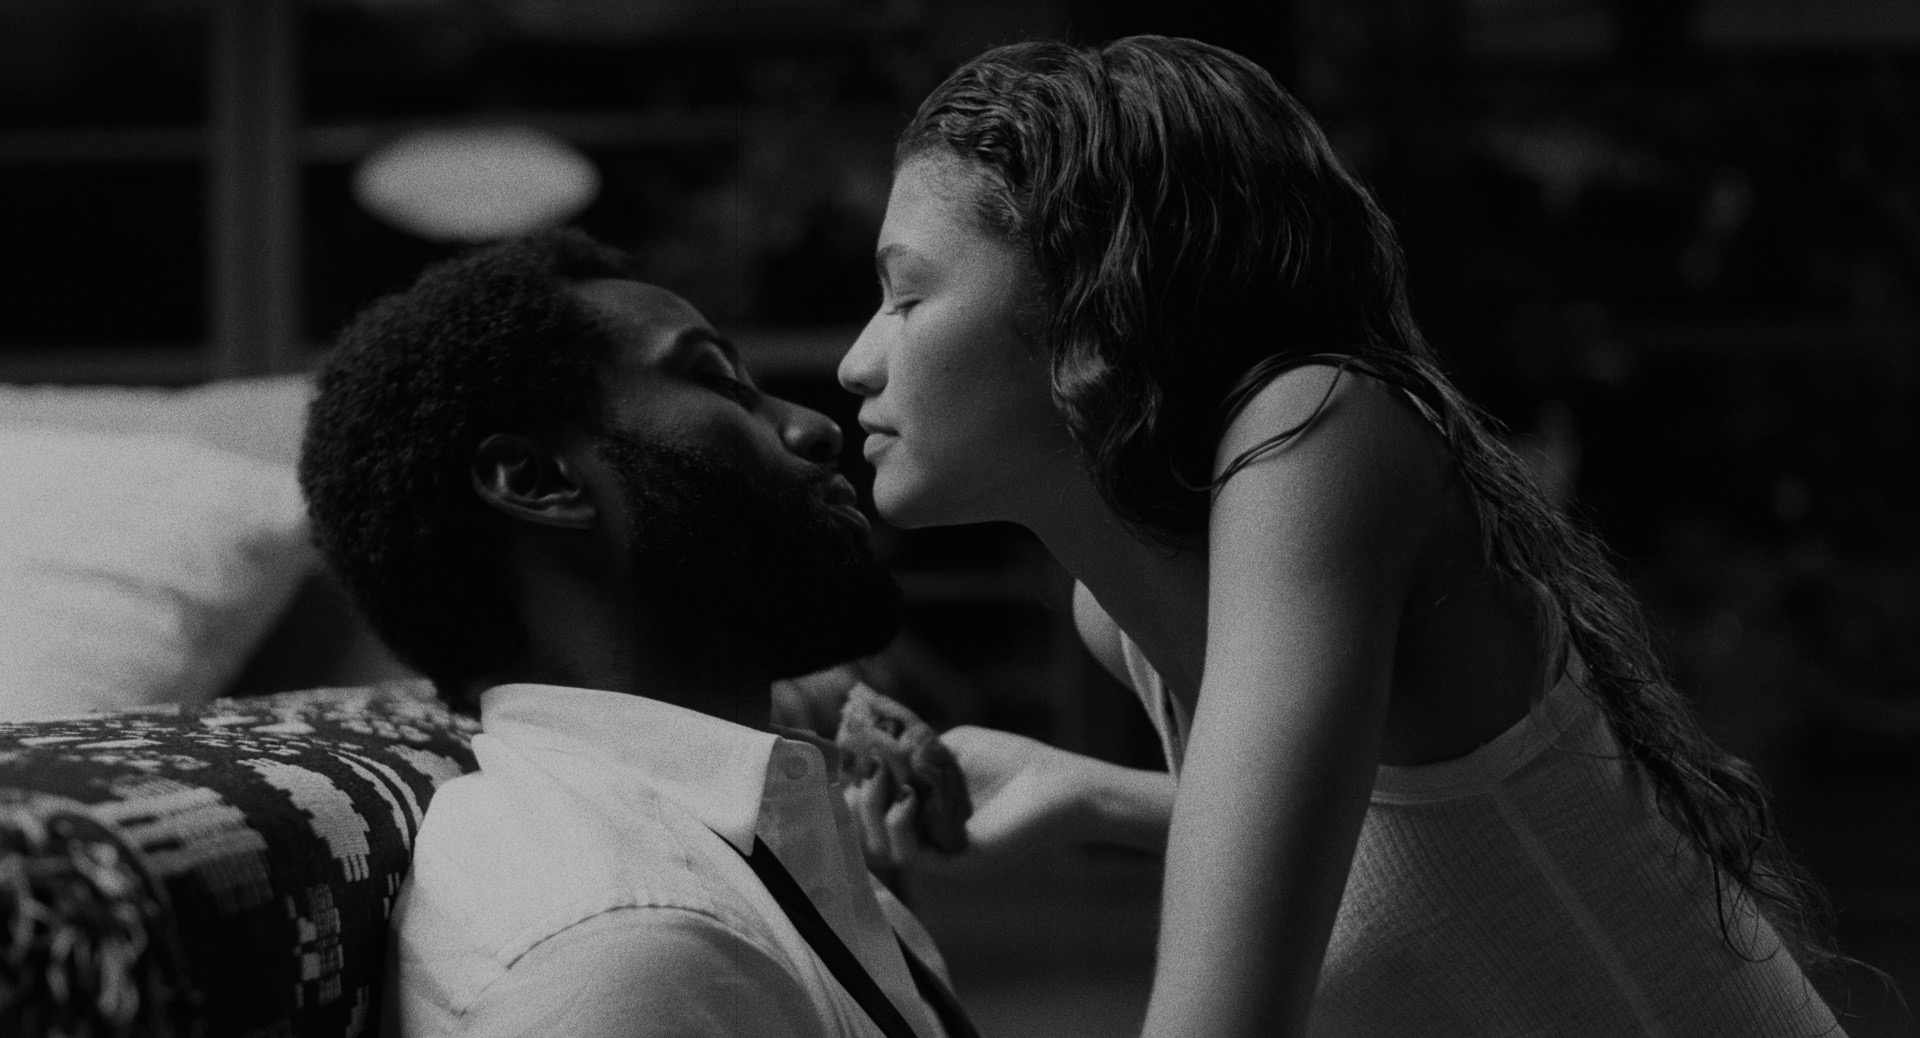 'Malcolm & Marie' Is the Anatomy of A Long-Festering Breakdown of Relationship Communication